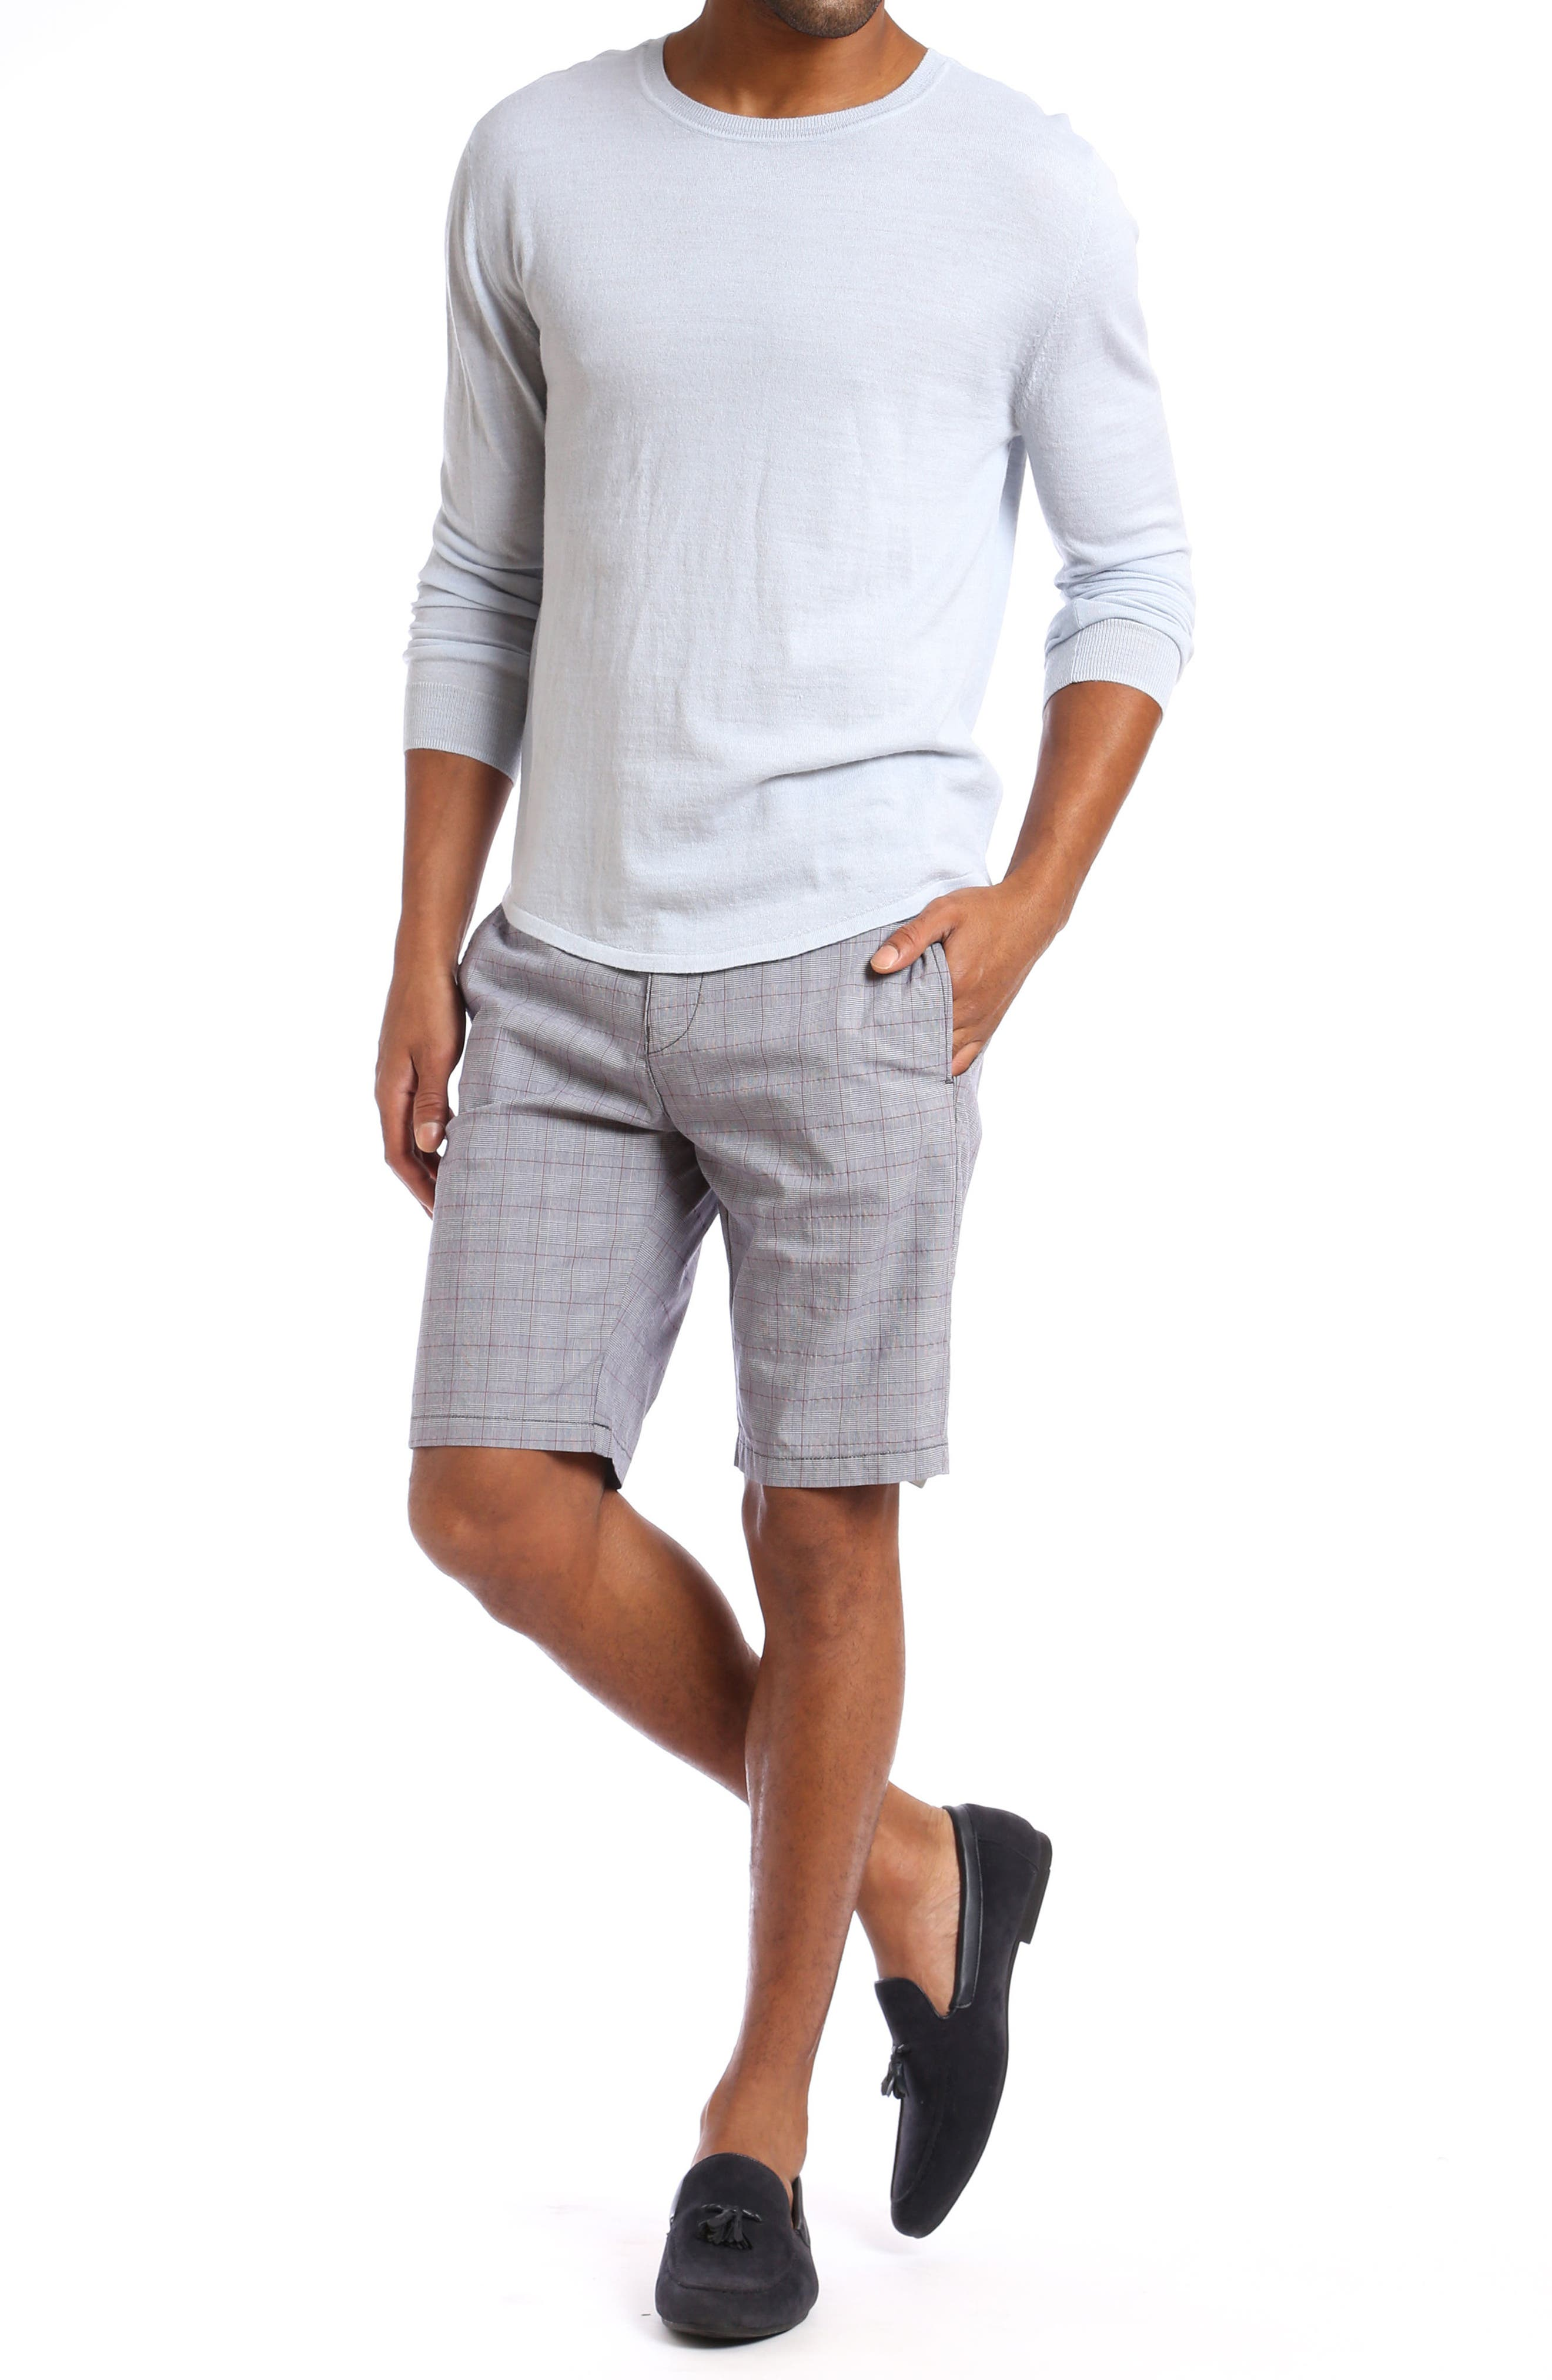 Nevada Twill Shorts,                             Alternate thumbnail 4, color,                             Grey Plaid